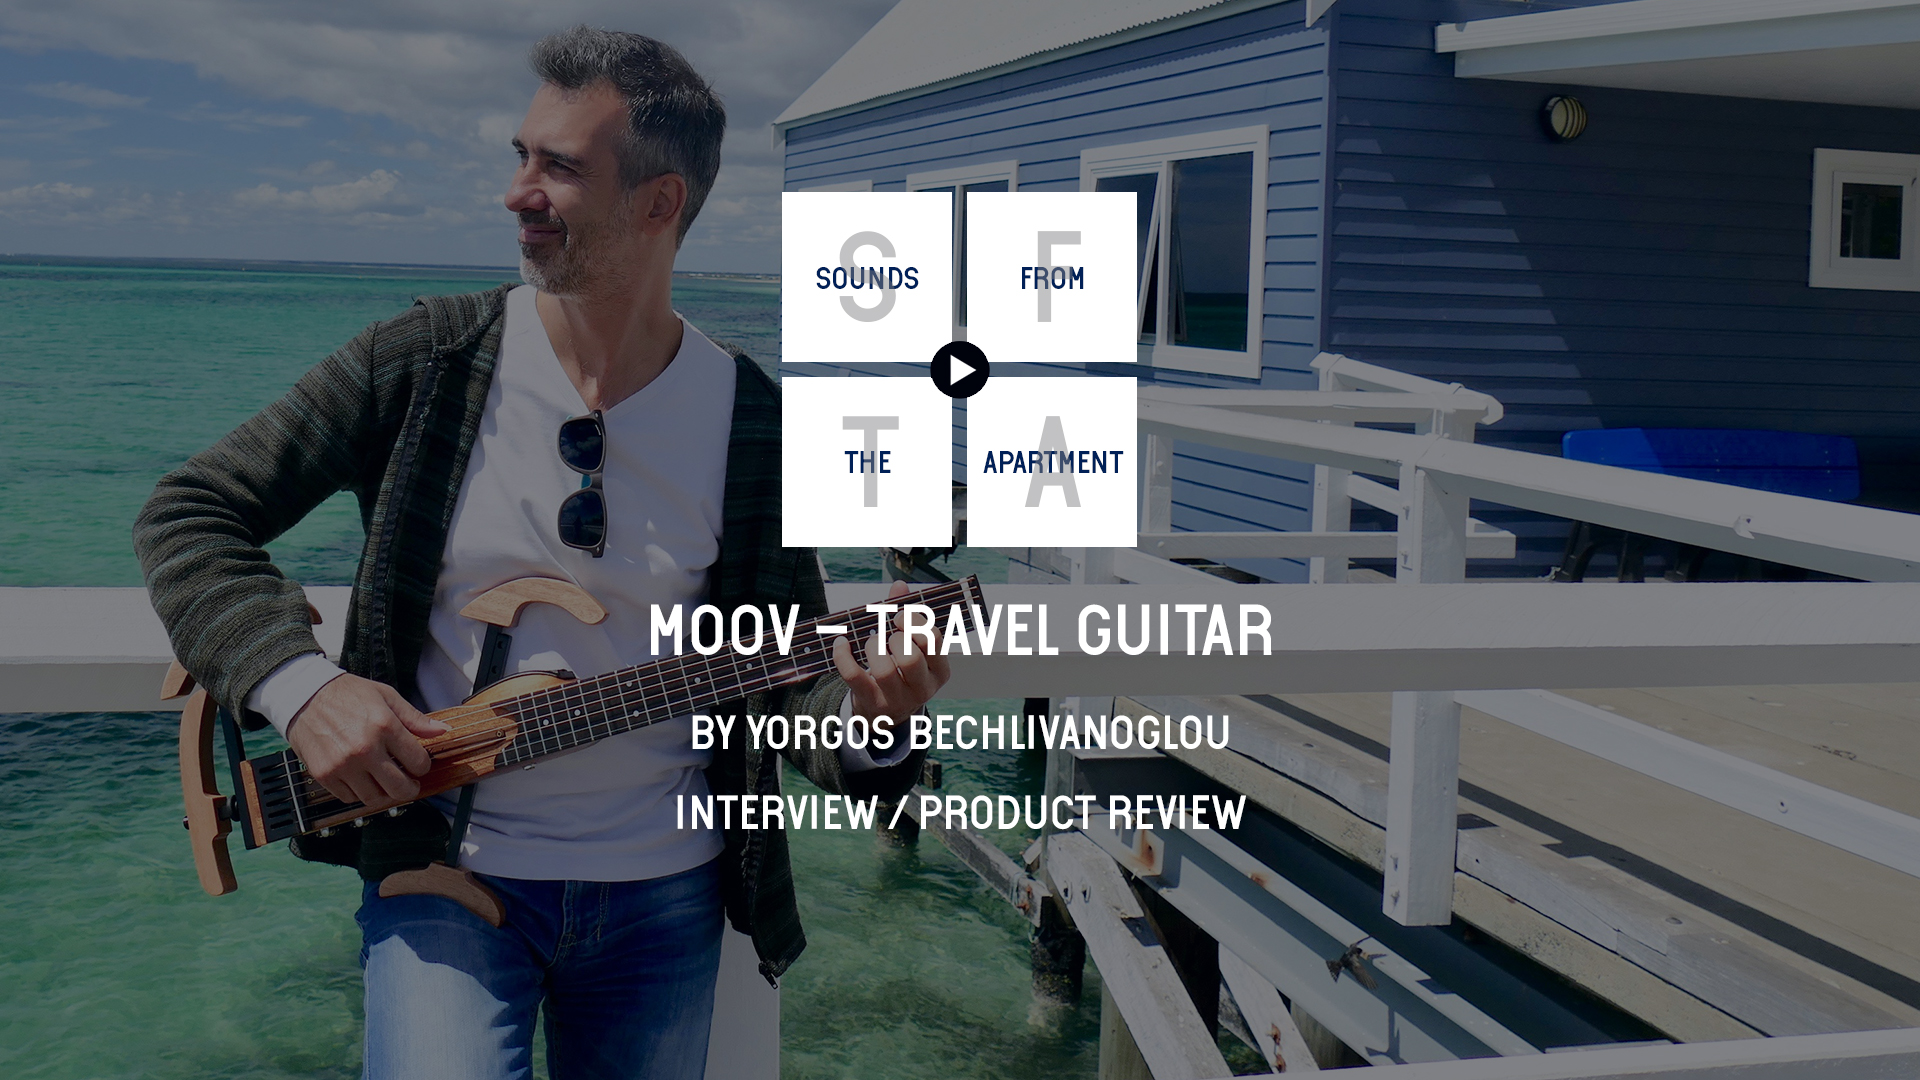 Moov travel guitar sounds fro mthe apartment yorgos bechlivanoglou